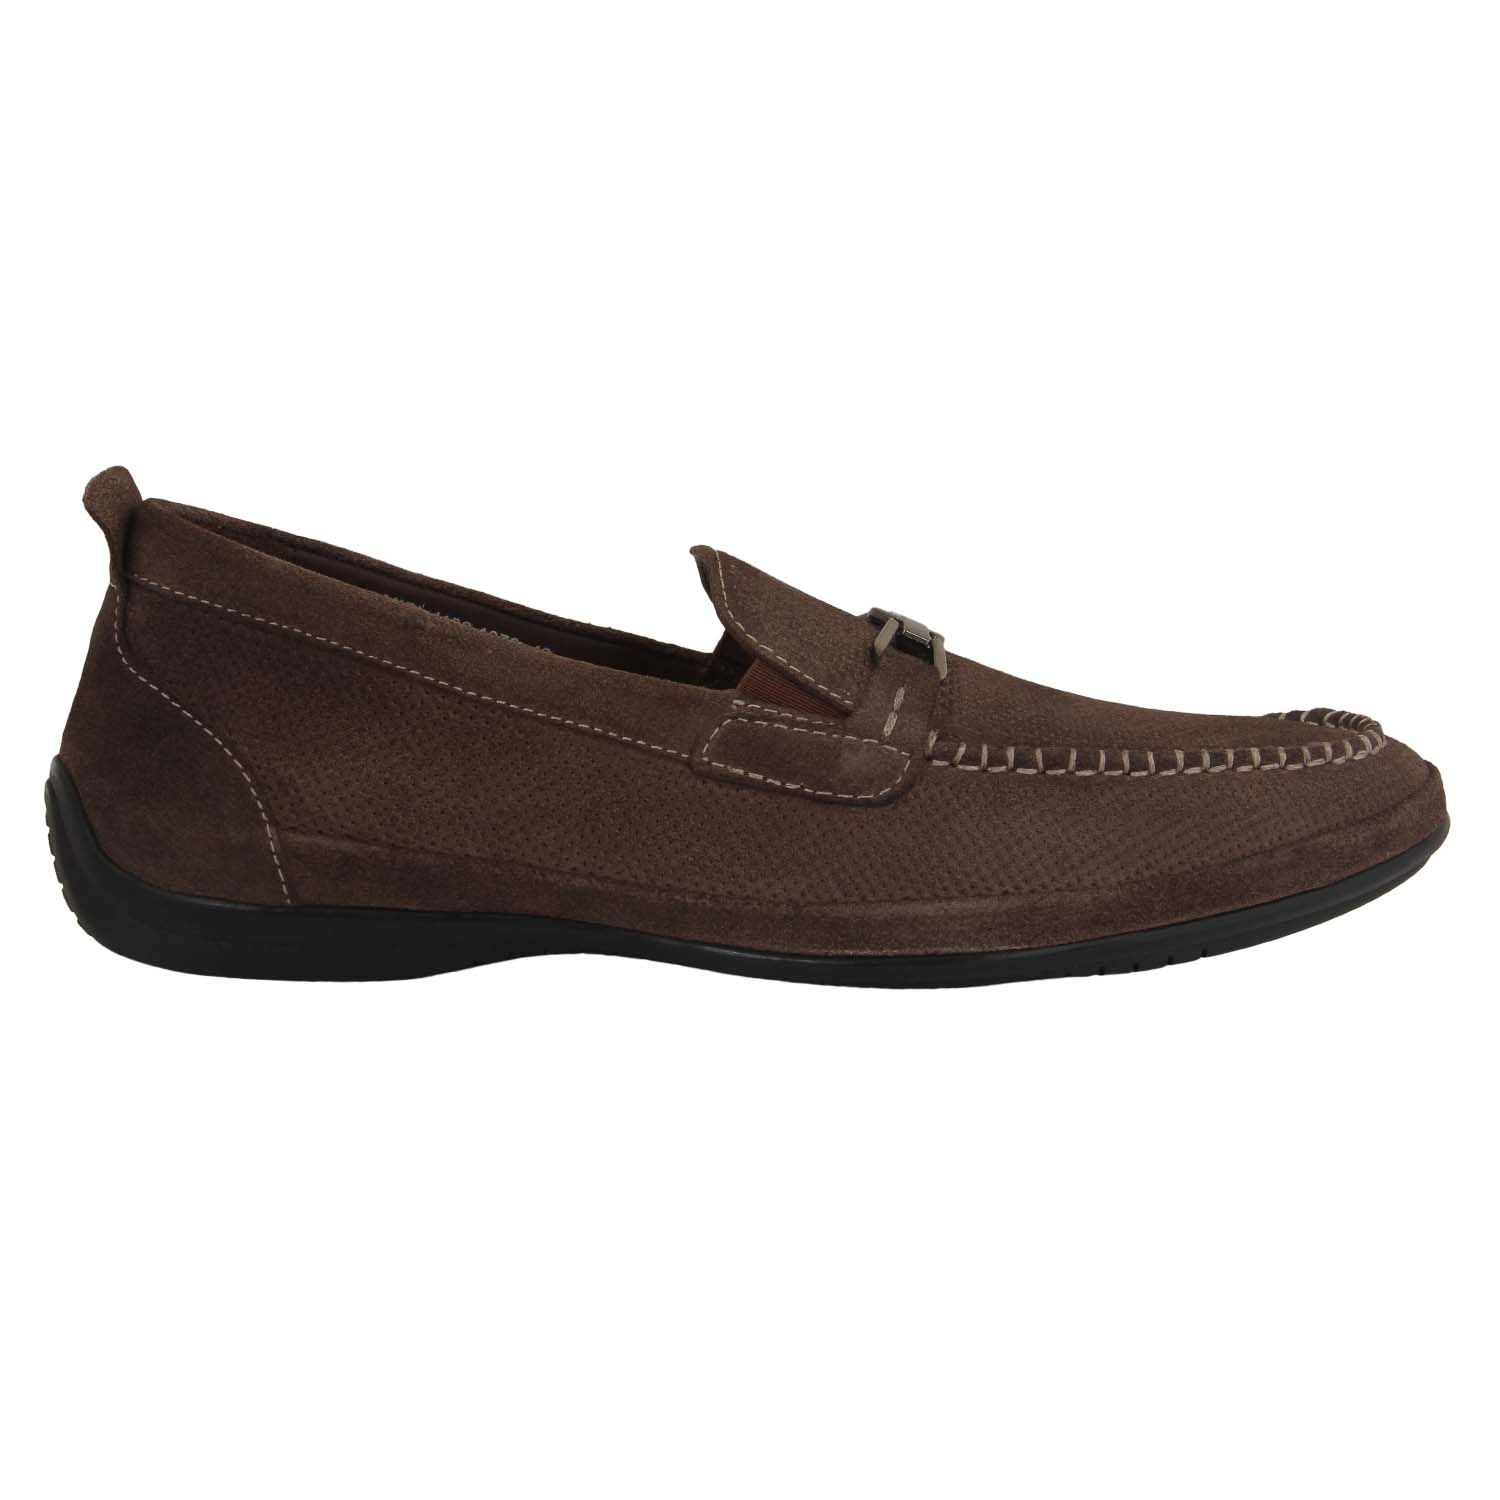 Brown Suede Slip-On Loafer Shoes